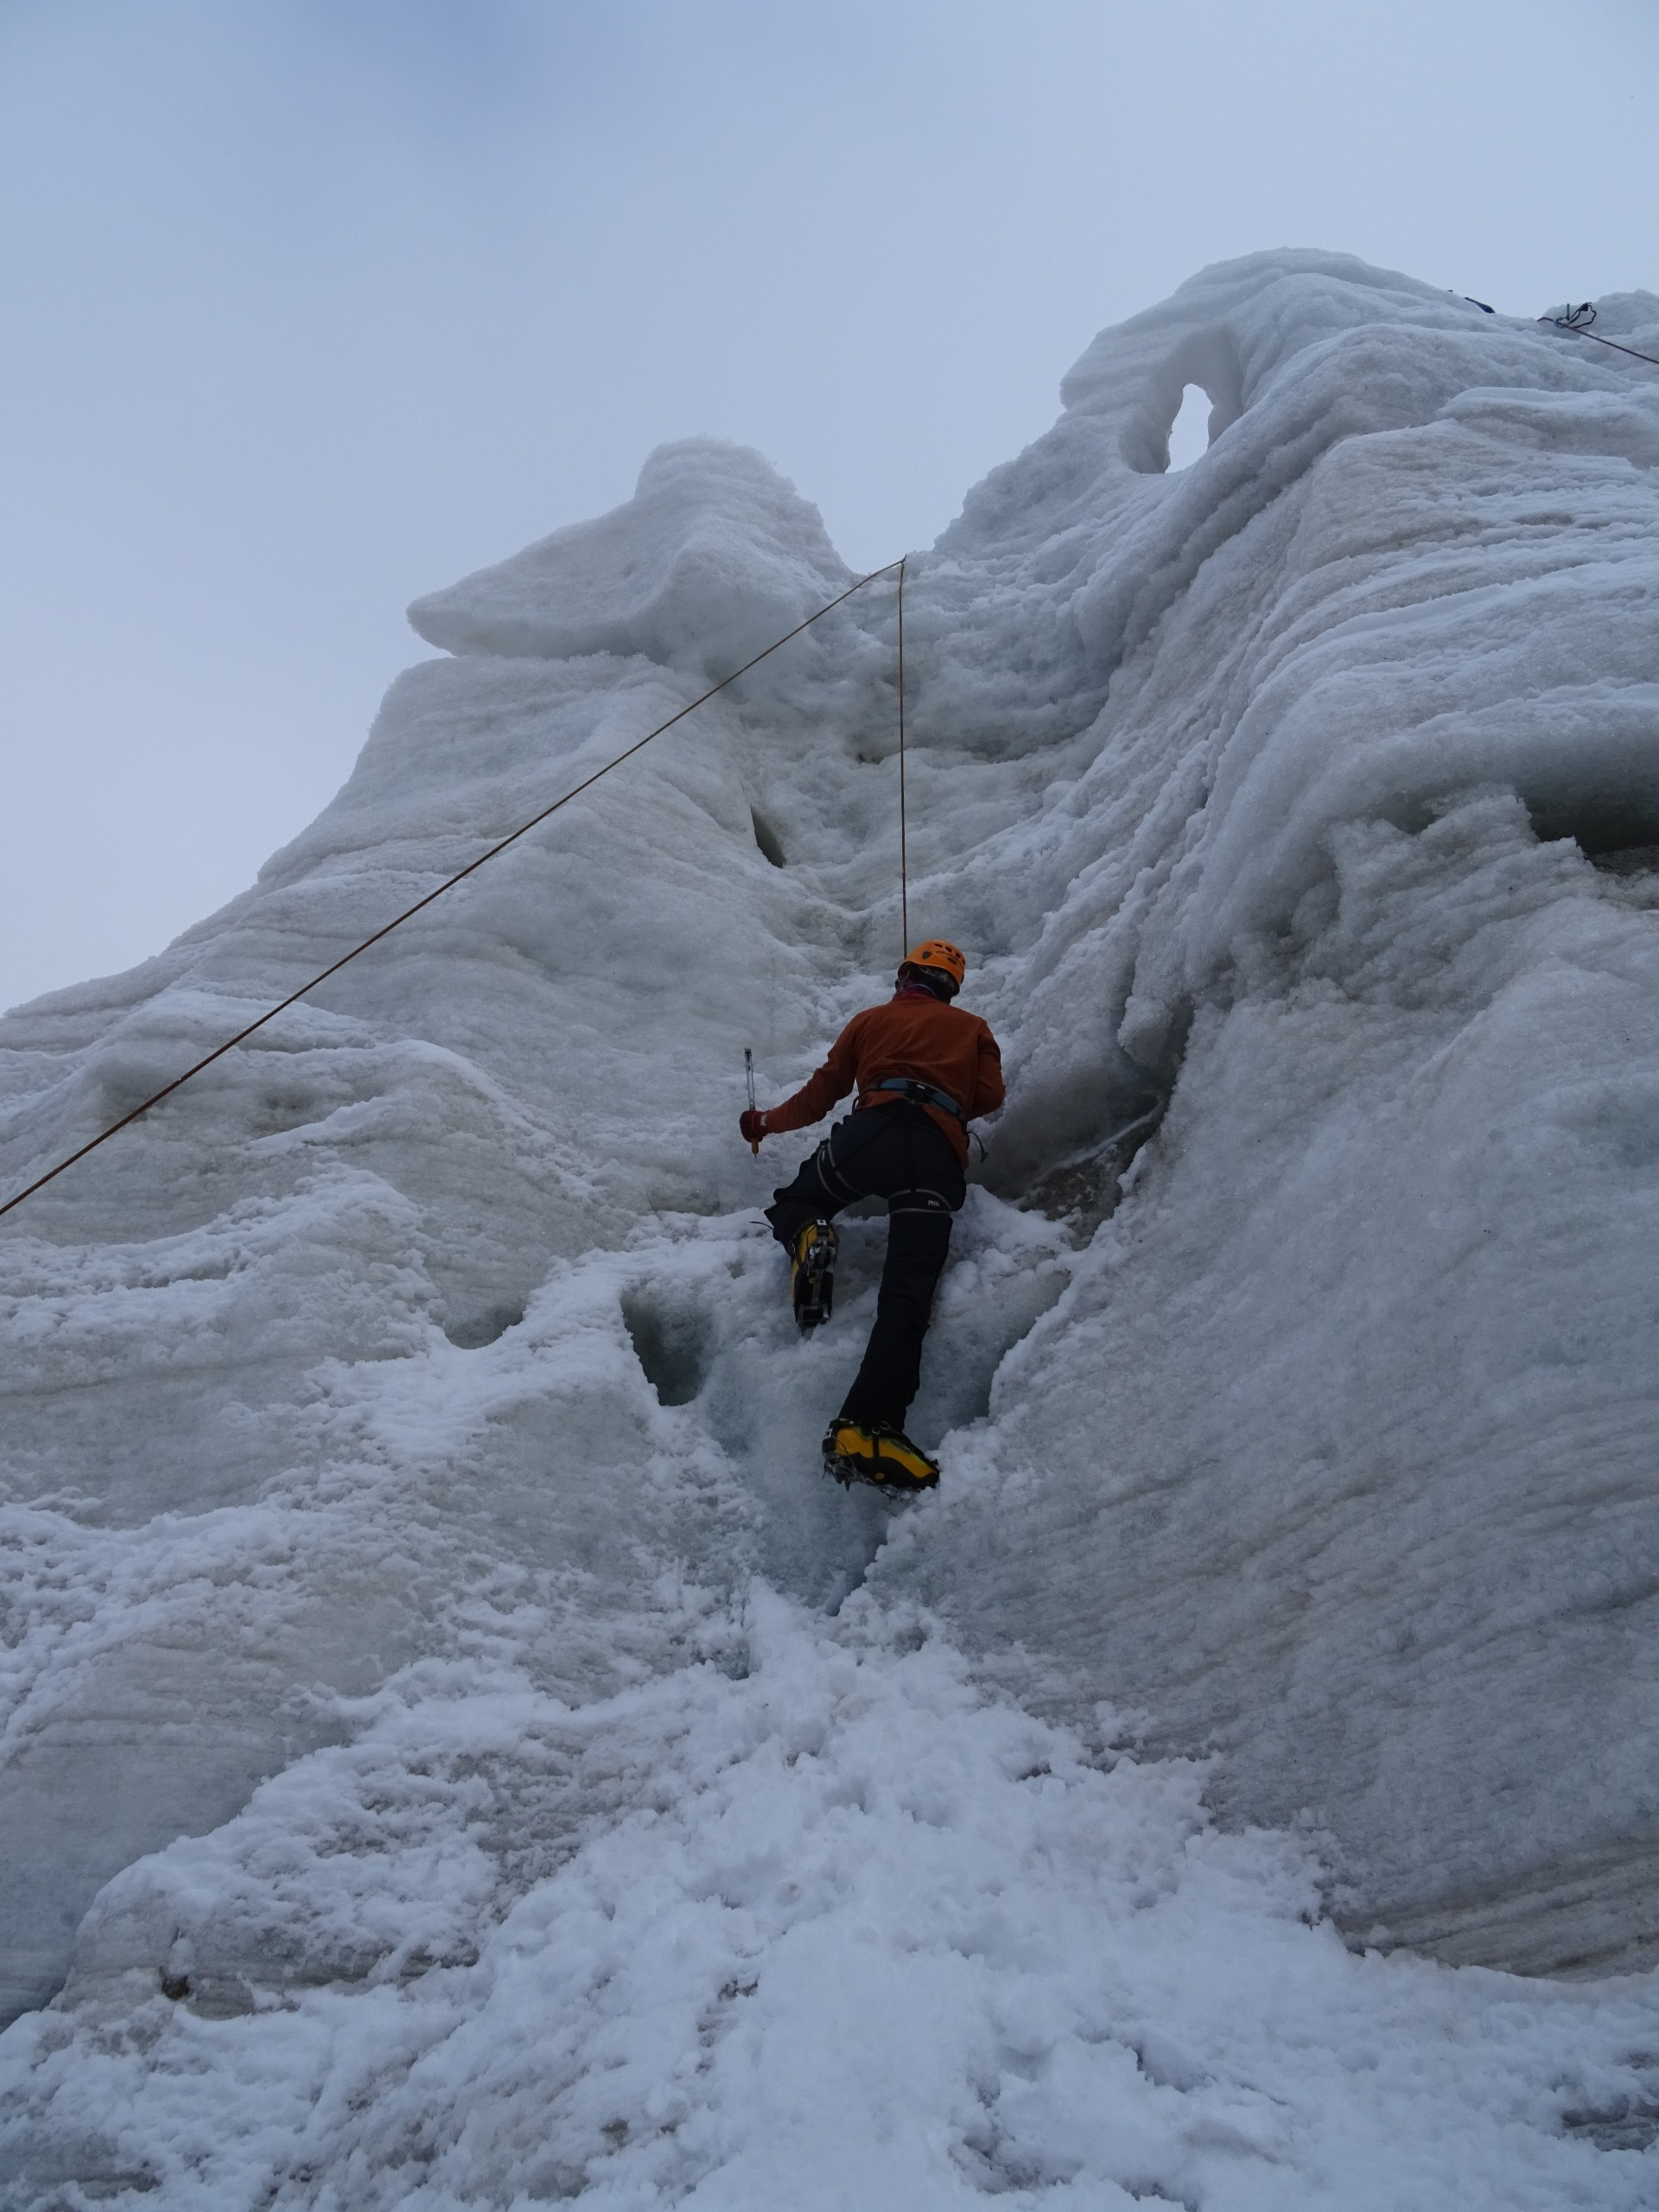 Bit of ice climbing. No problem.